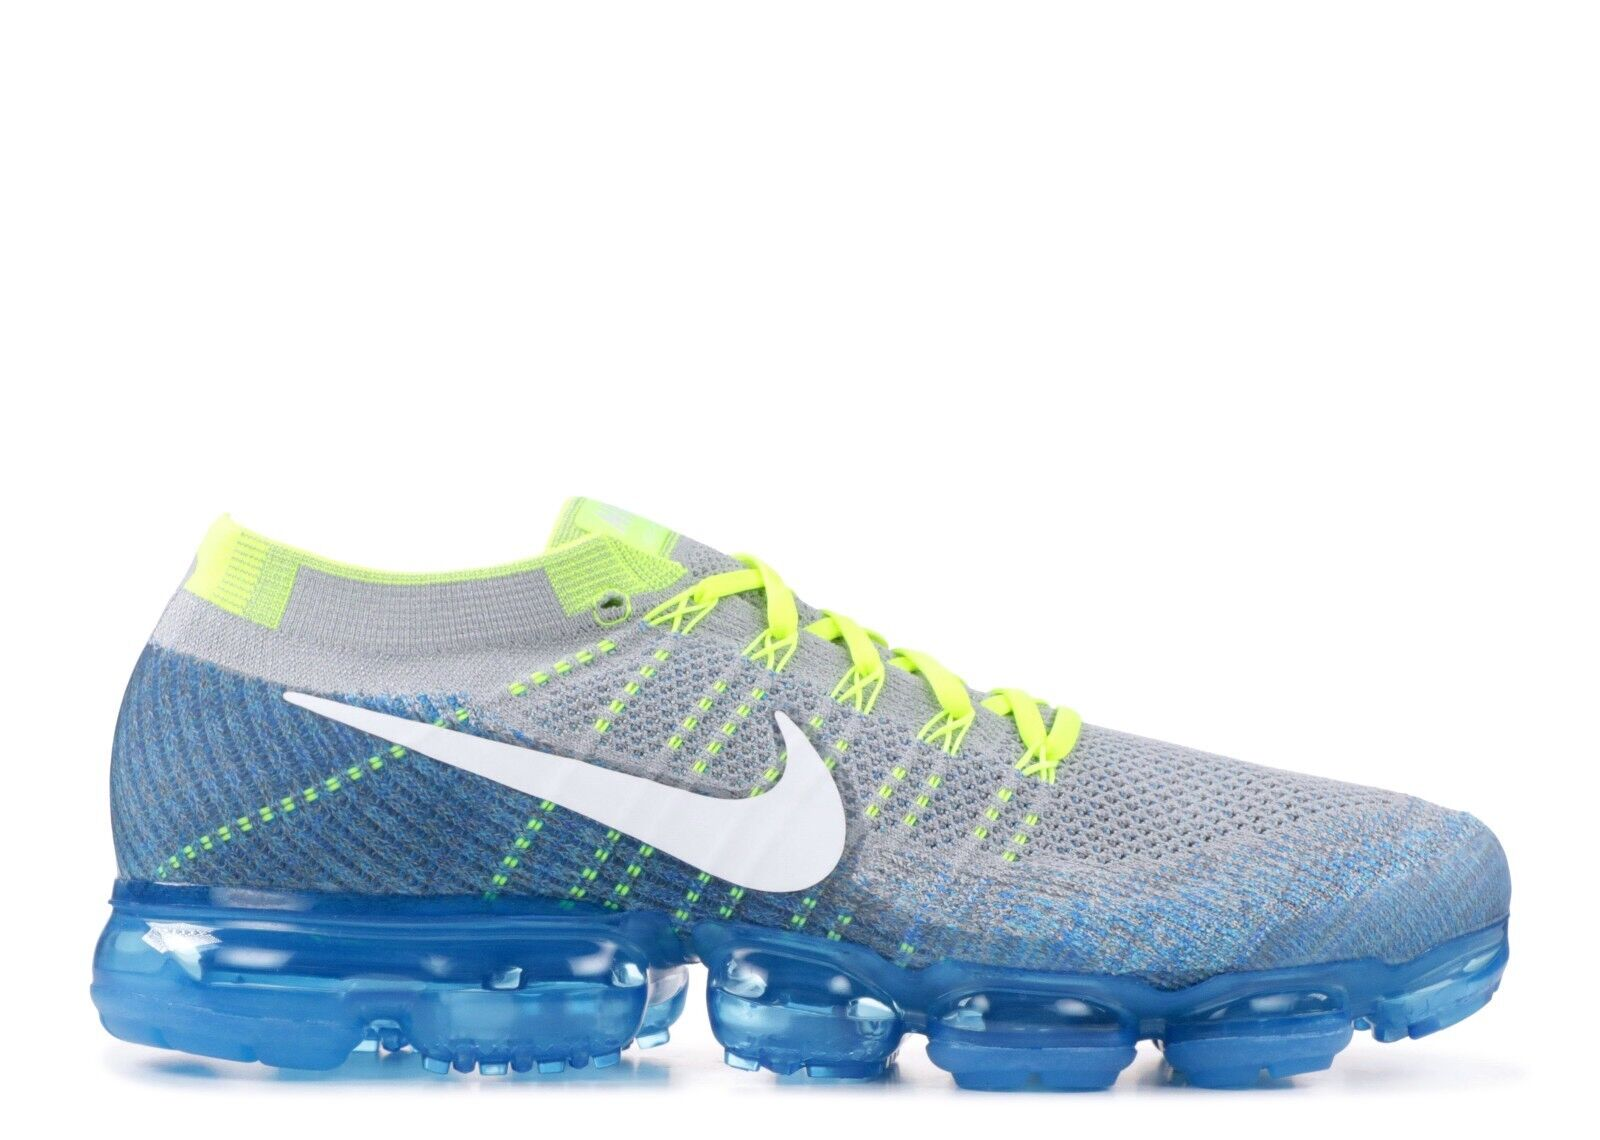 204d12c7bff New New New Nike Air Vapormax Flyknit Sprite Wolf Grey Chlorine Blue 849558  022 Size10.